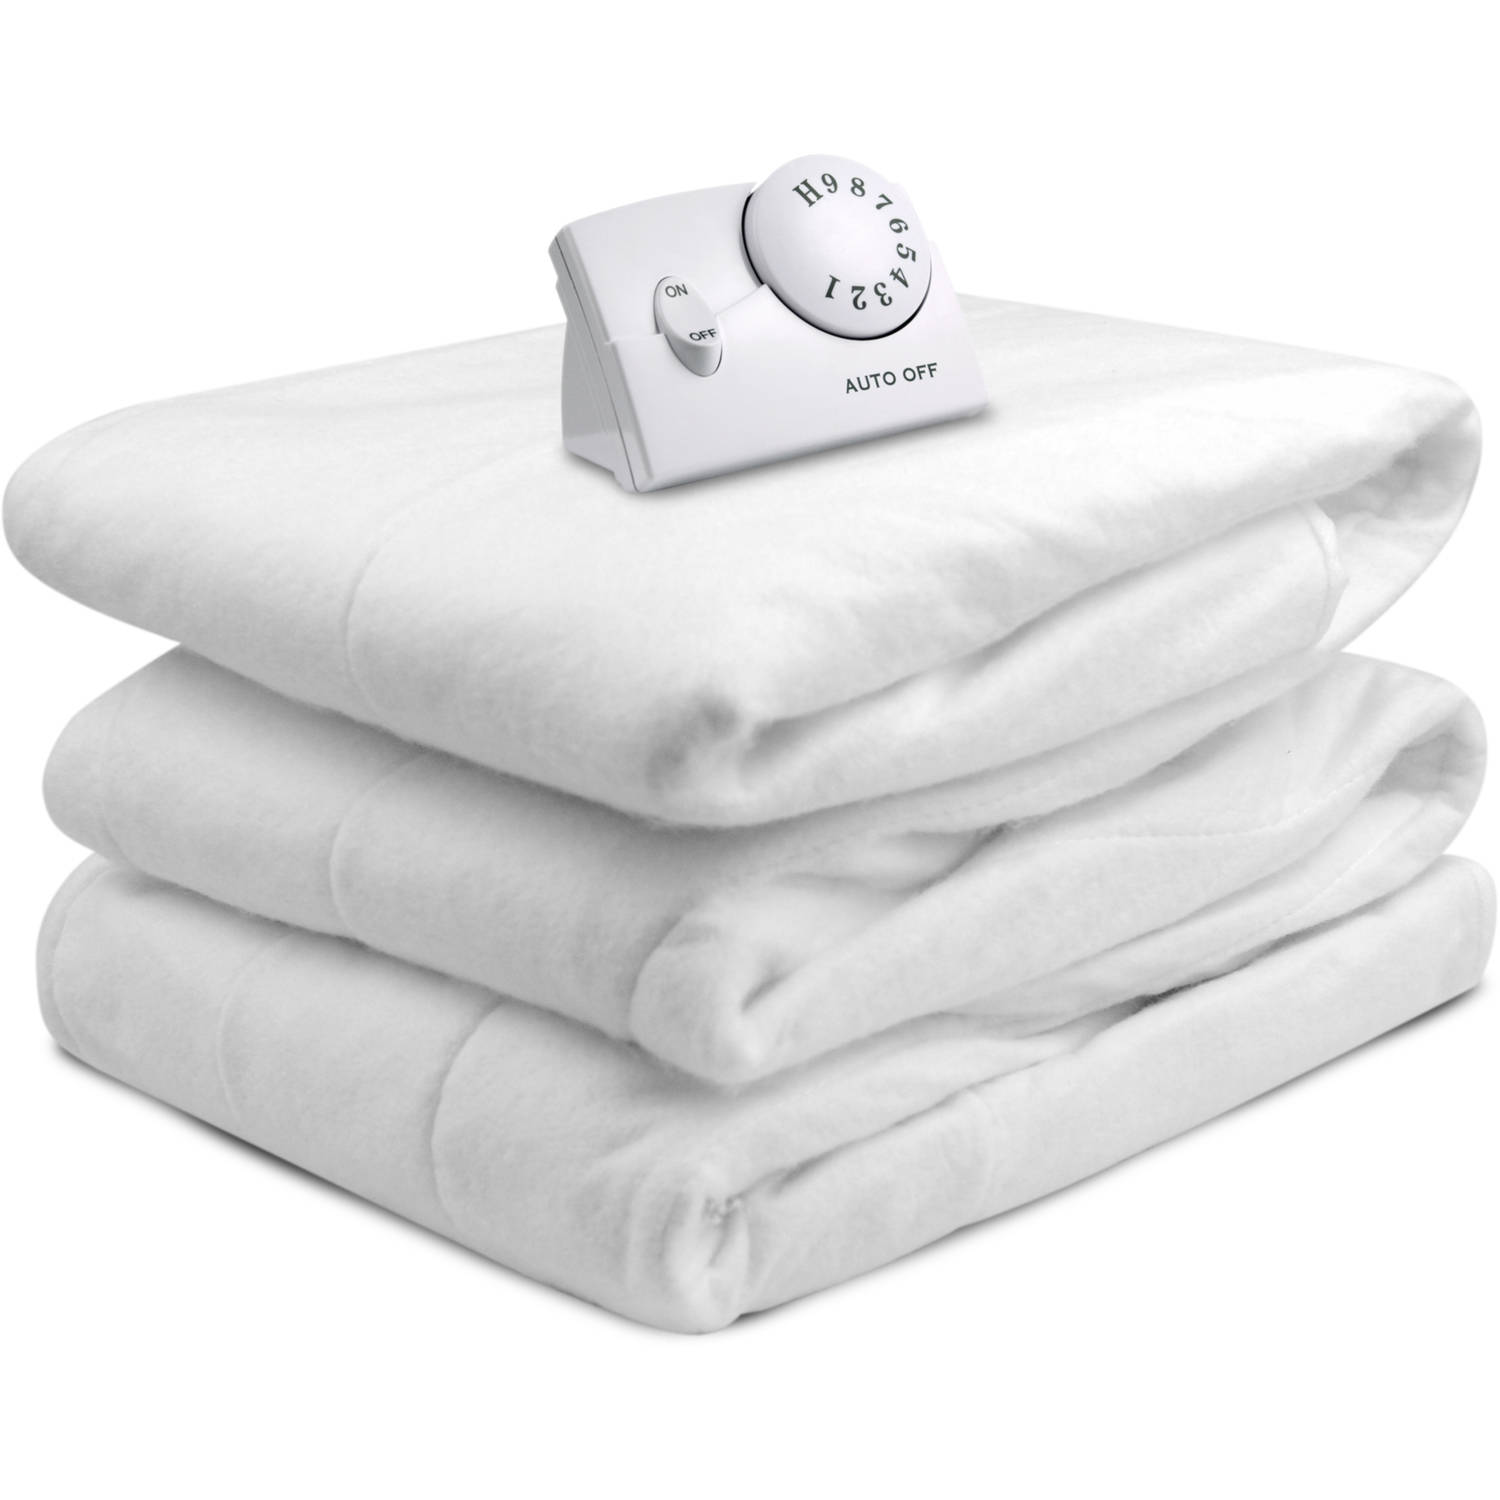 Biddeford Electric Blankets Heated Mattress Pad Warm